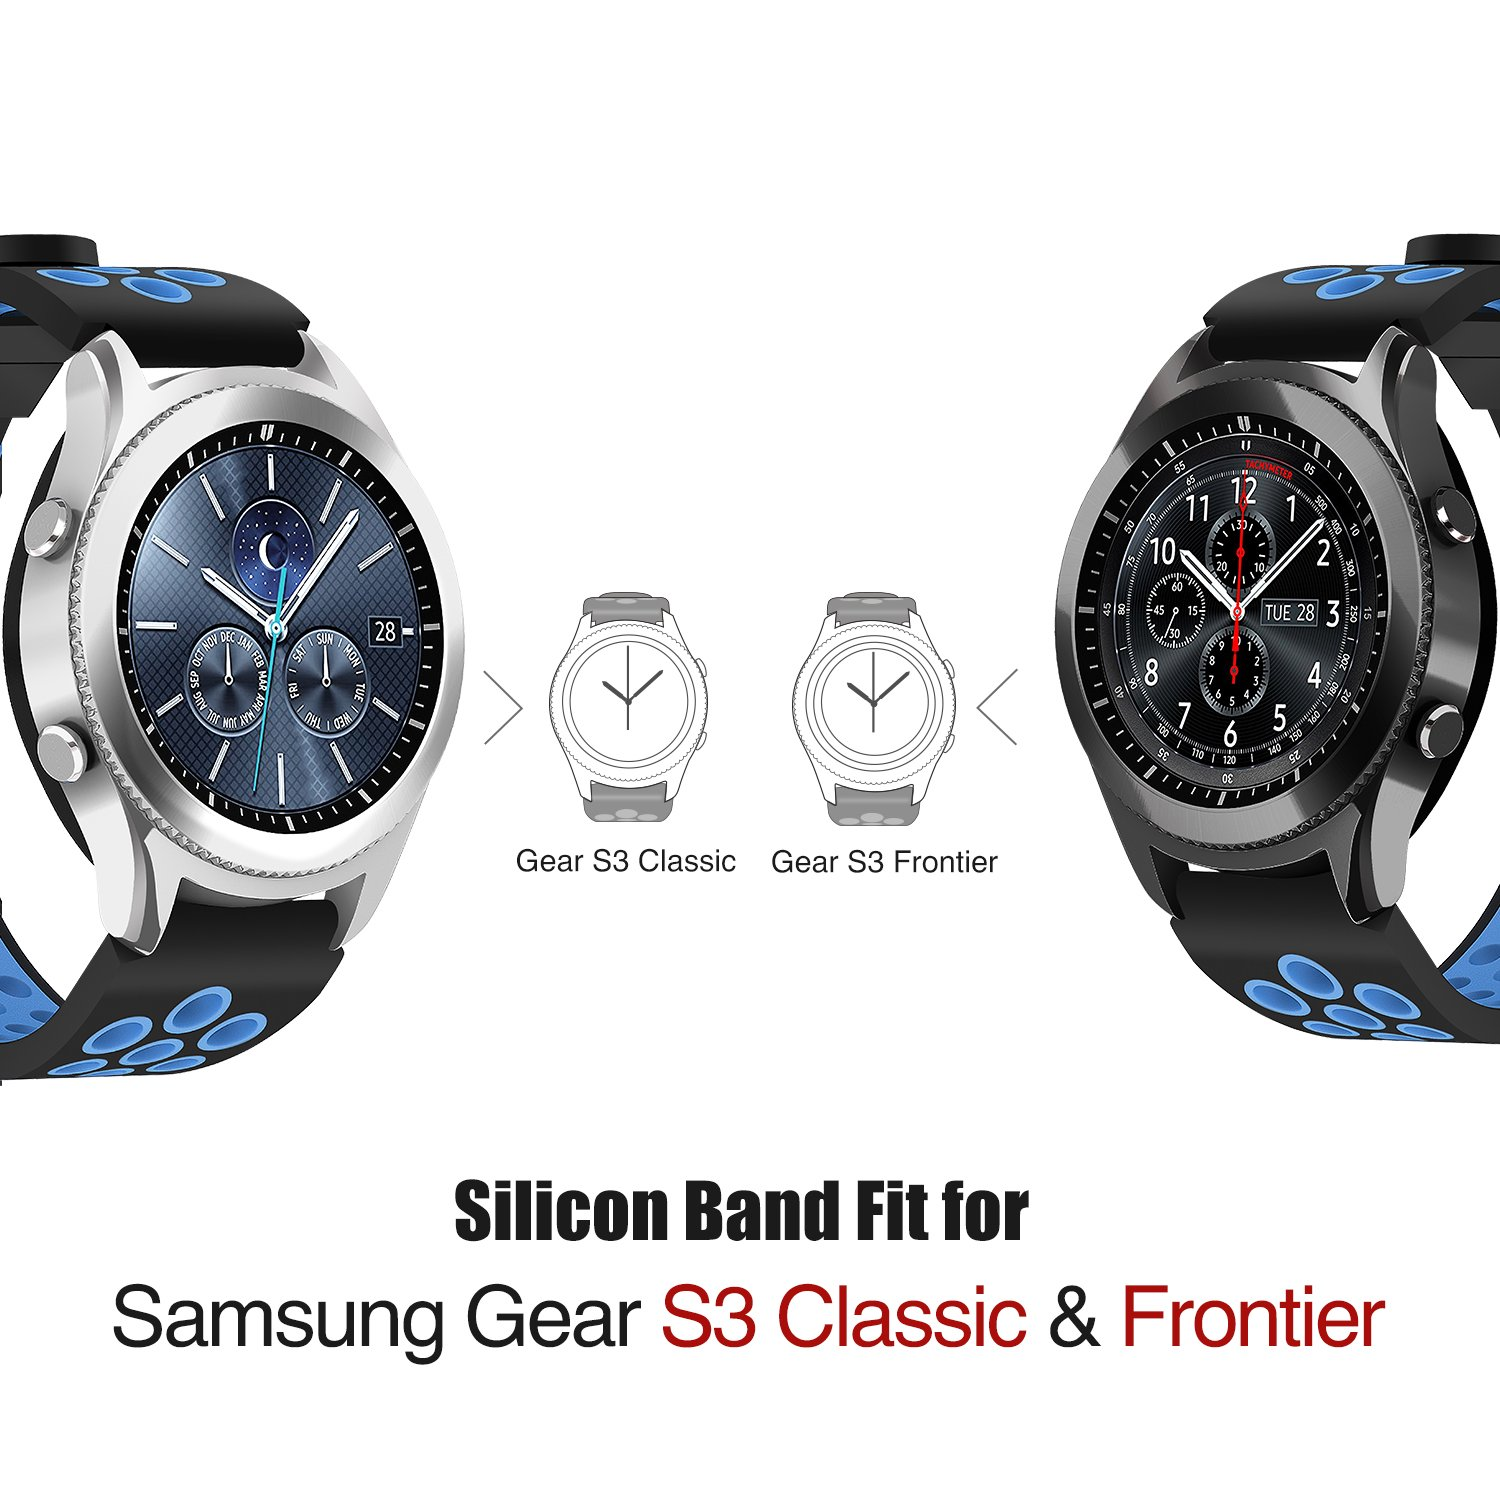 pack strap samsung watches watch gear frontier band fabric nylon opp pin bag for sport spring bracelet replacement loop product with leather